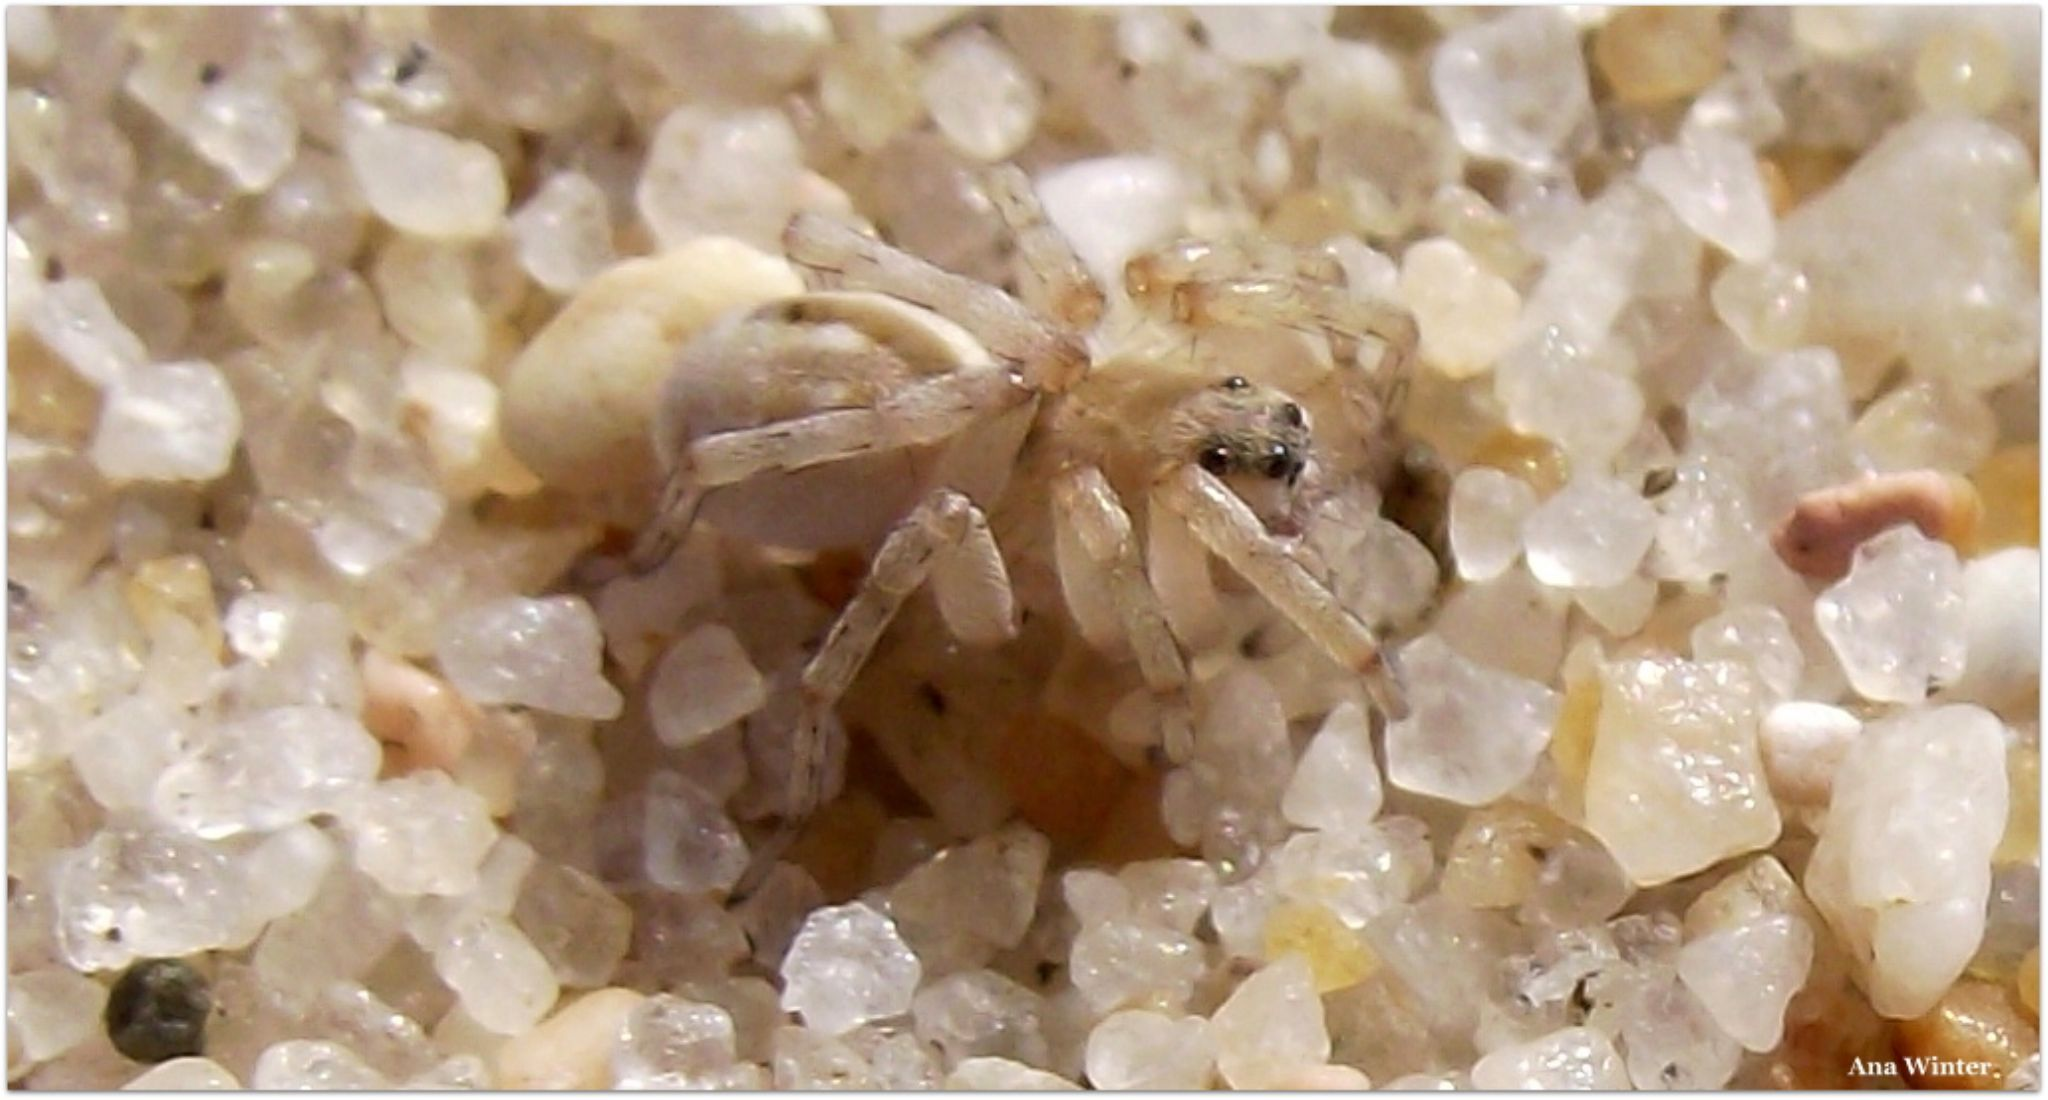 Cute Sand Spider  by Ana Winter